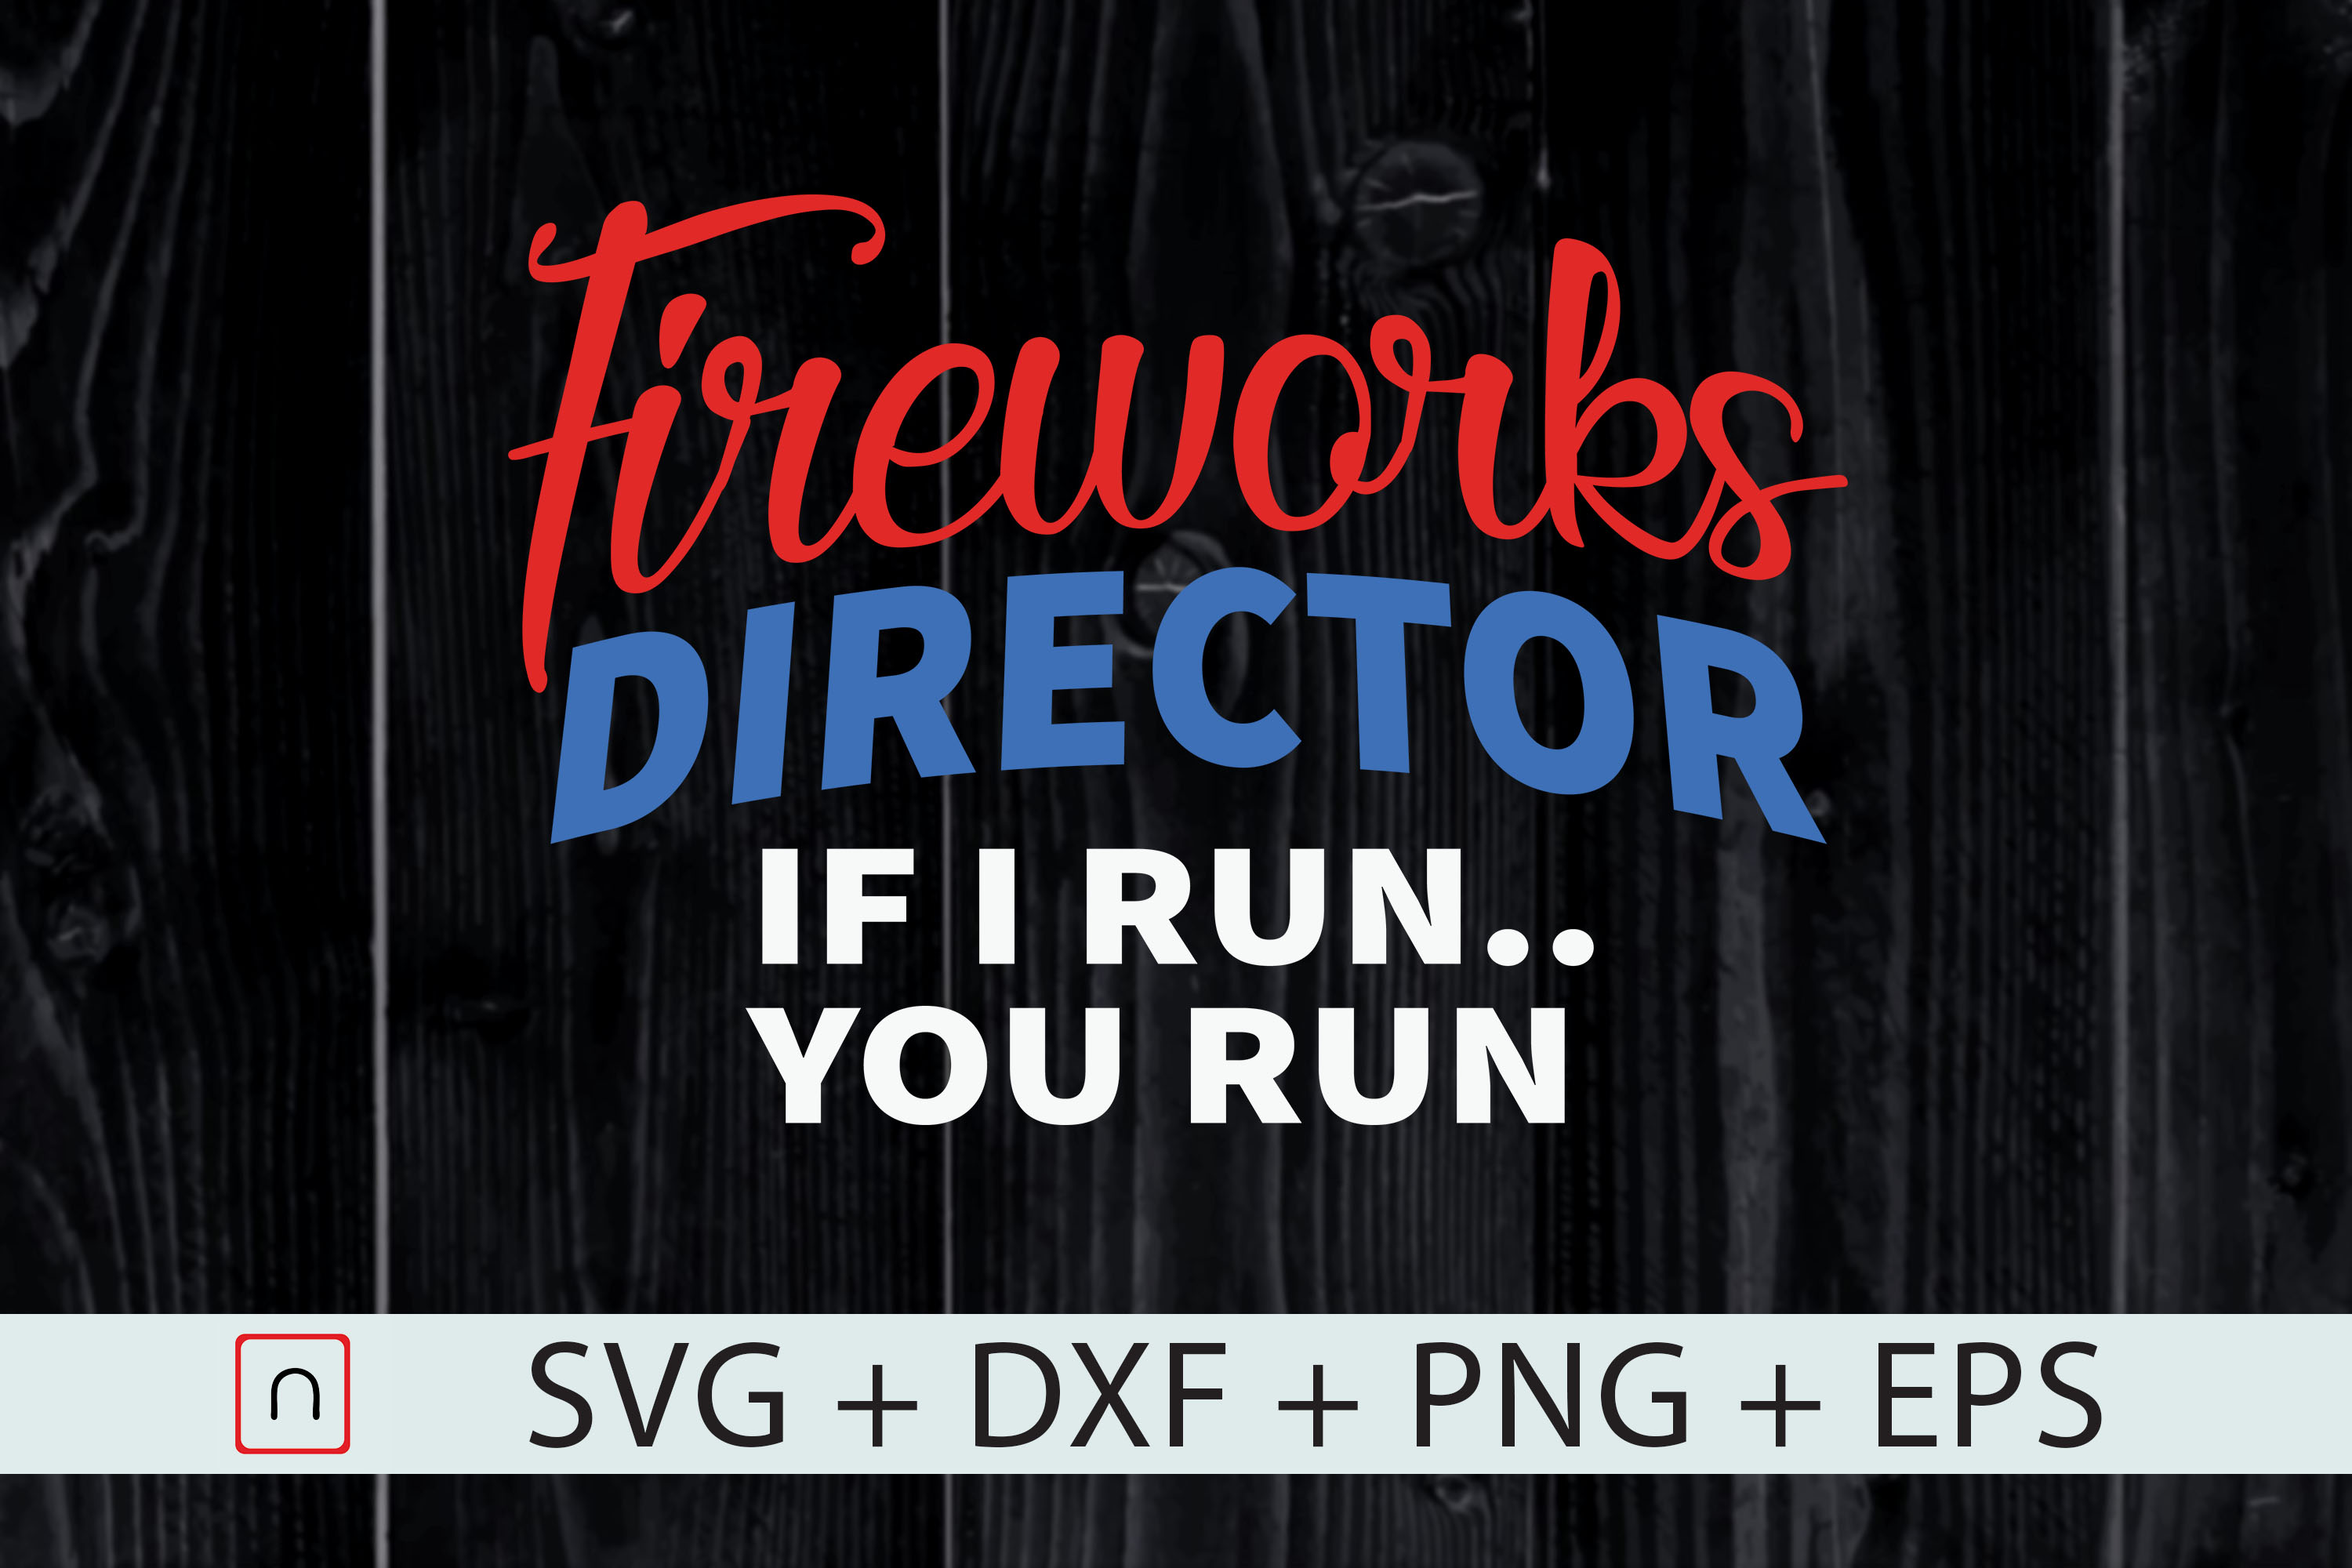 Download Free Fireworks Director Funny 4th Of July Graphic By Novalia for Cricut Explore, Silhouette and other cutting machines.